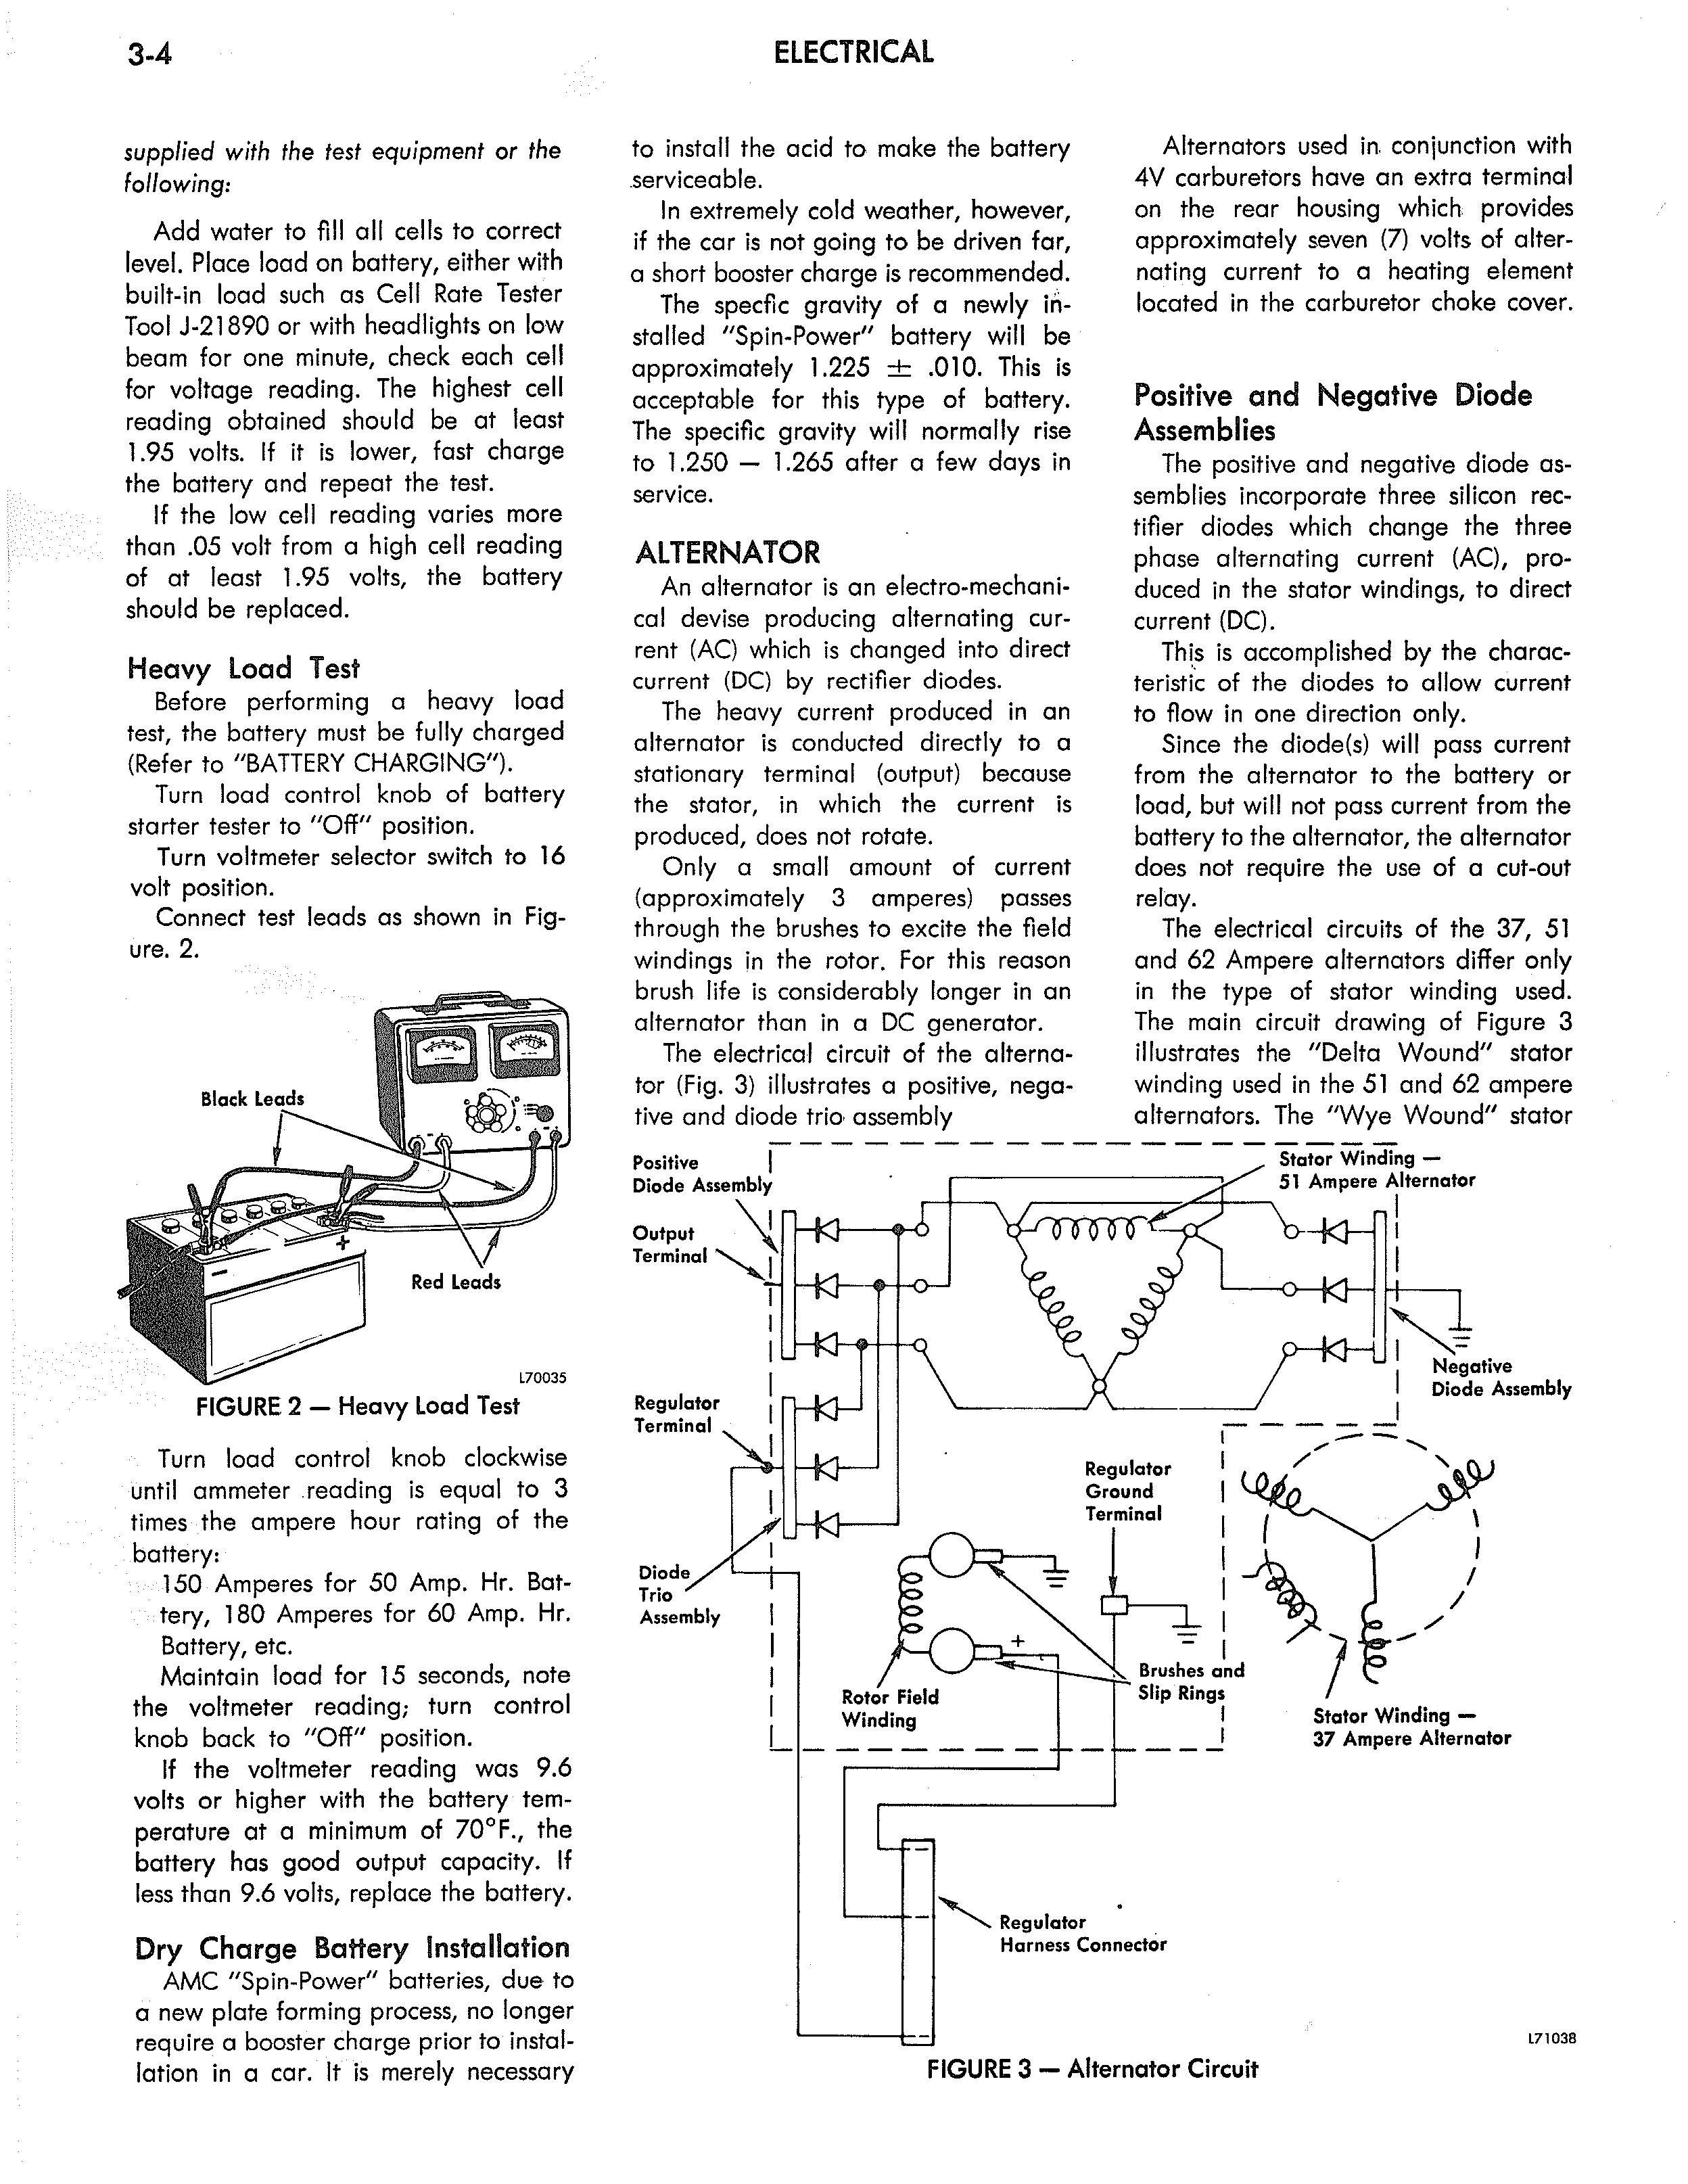 1973 AMC Technical Service Manual page 84 of 487